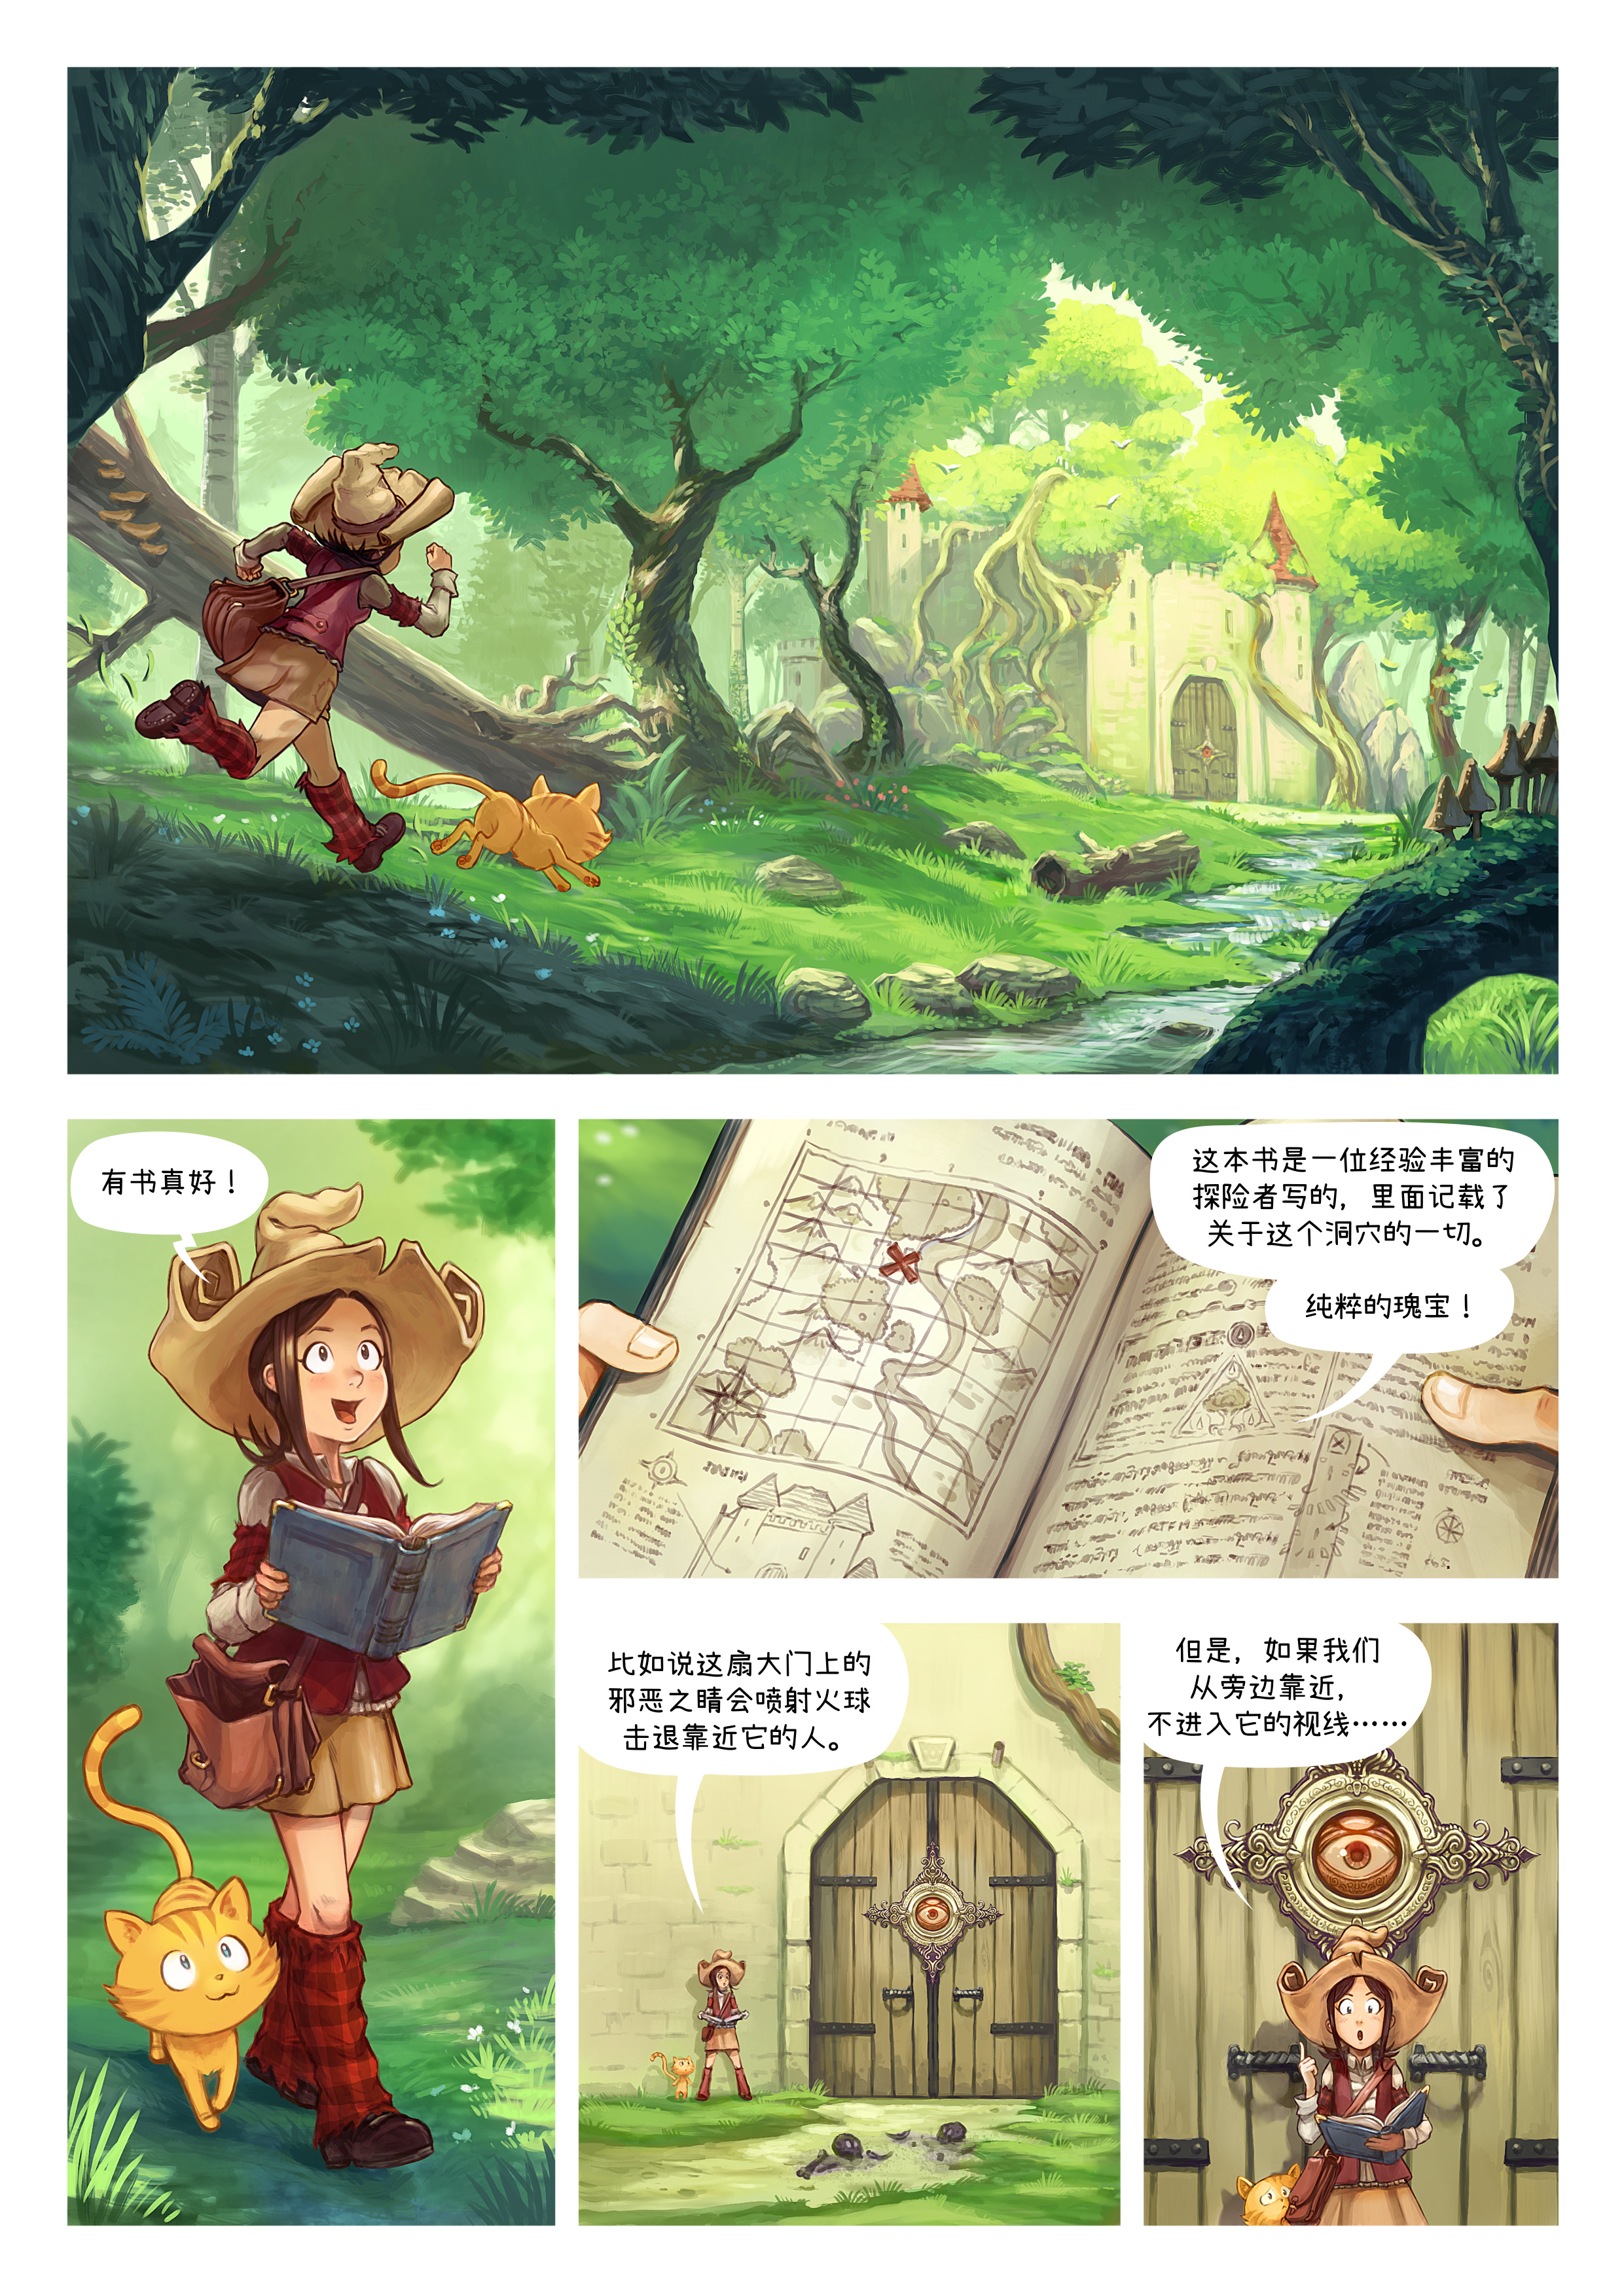 A webcomic page of Pepper&Carrot, 漫画全集 26 [cn], 页面 1